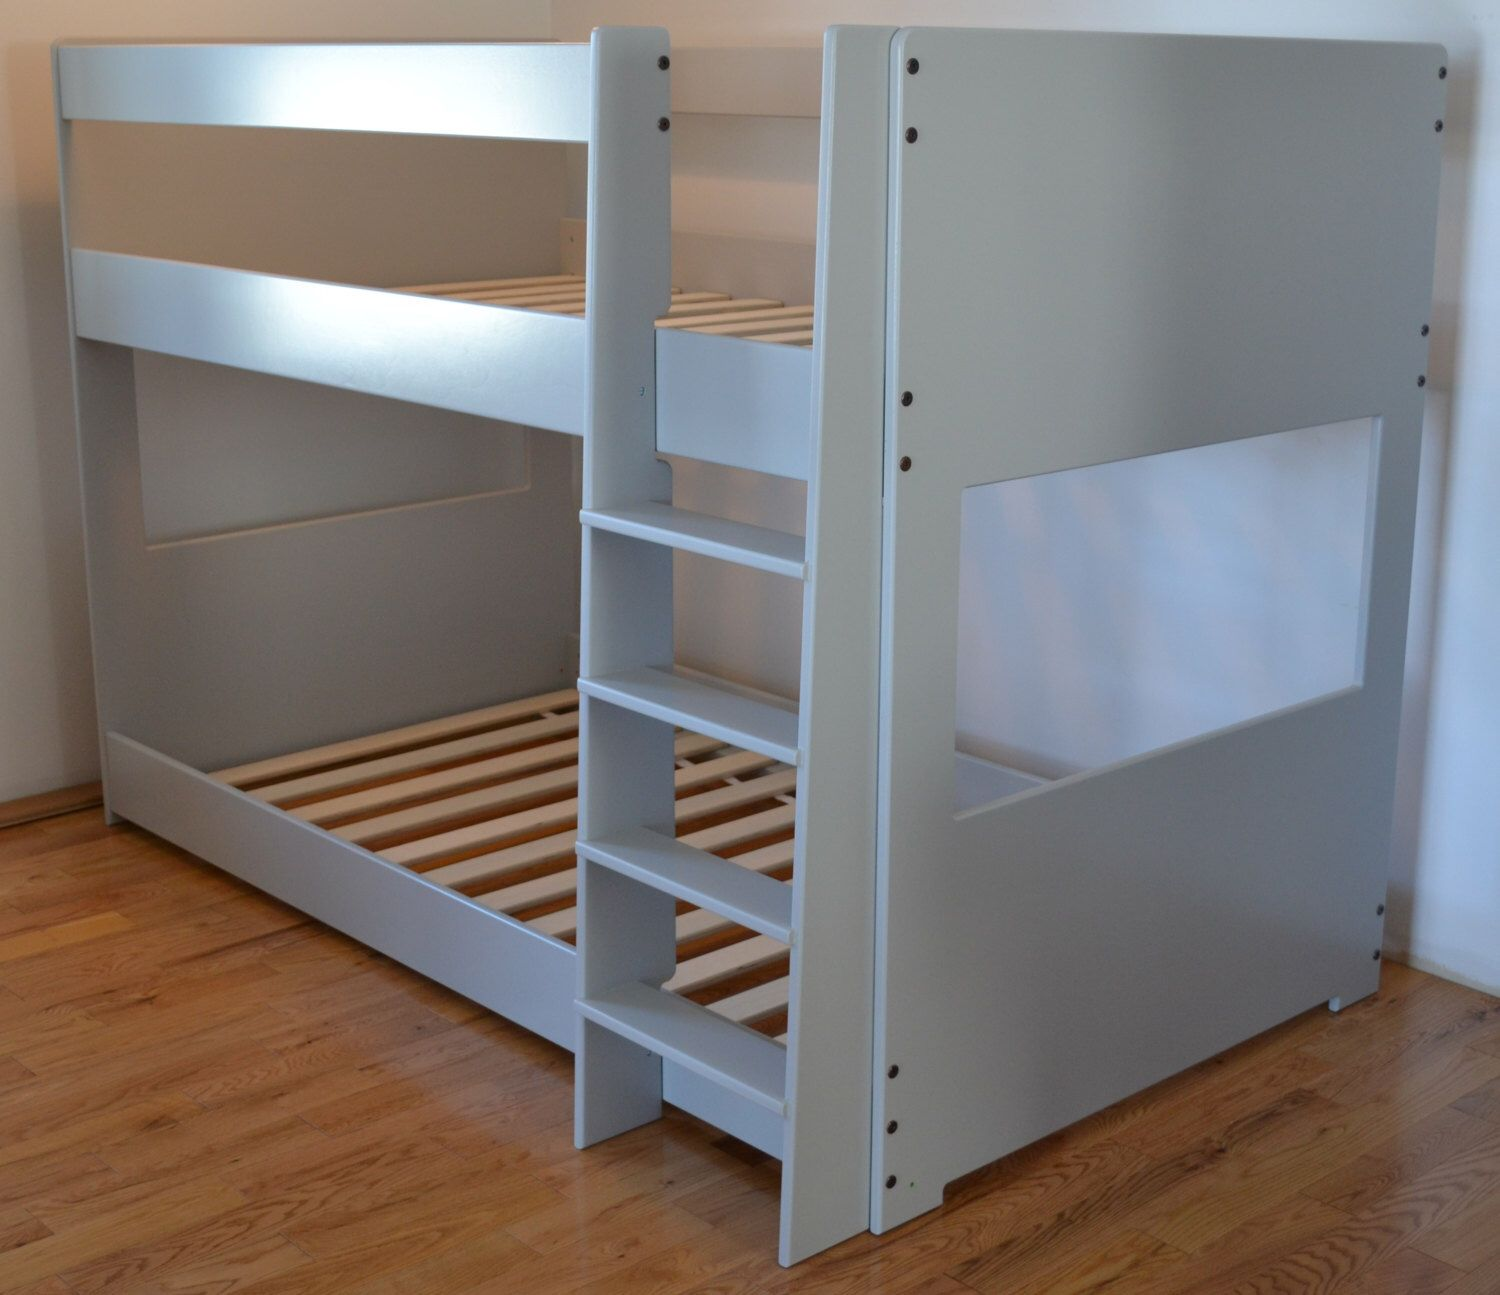 Bunk beds for 10 inch thick mattresses by BetweenPosts on